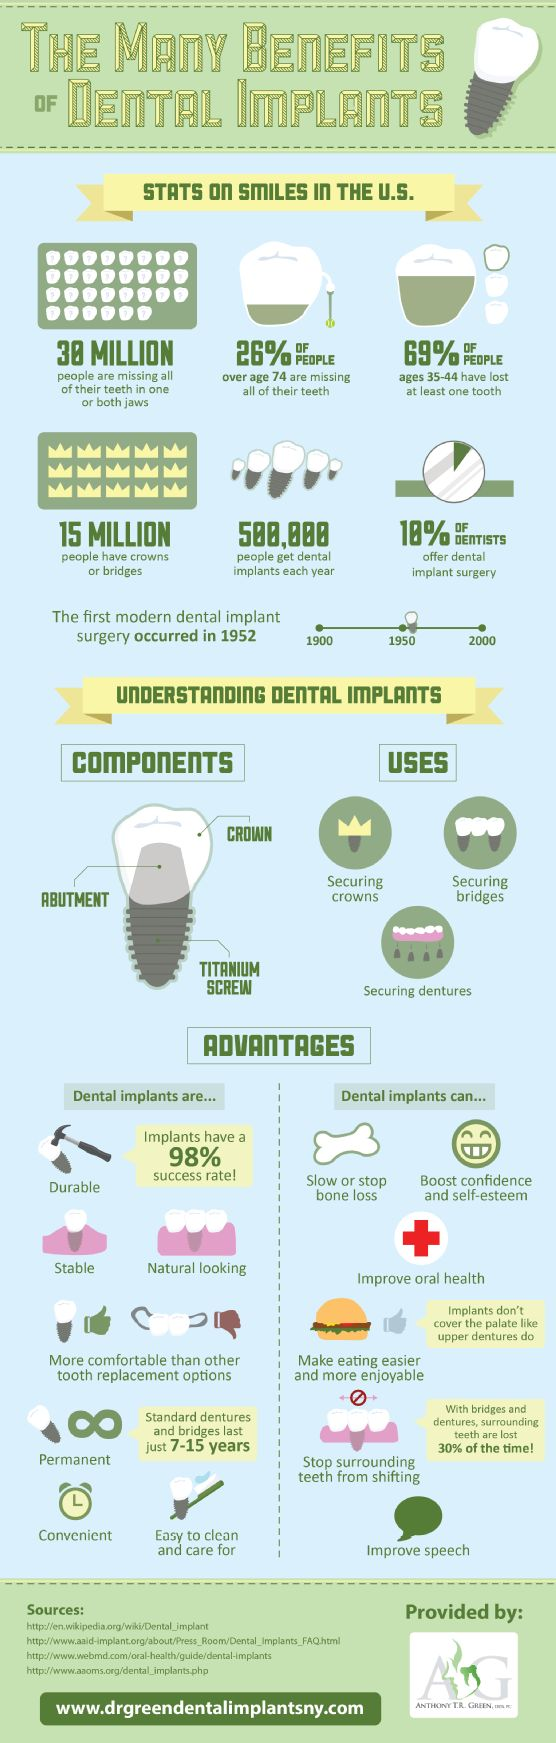 Smiles don't just affect appearance—they also affect health. That is why it is important to find the right solution for missing teeth, like dental implants. View this oral surgery infographic to learn more. Source: http://www.drgreendentalimplantsny.com/663024/2013/03/14/the-many-benefits-of-dental-implants-infographic.html